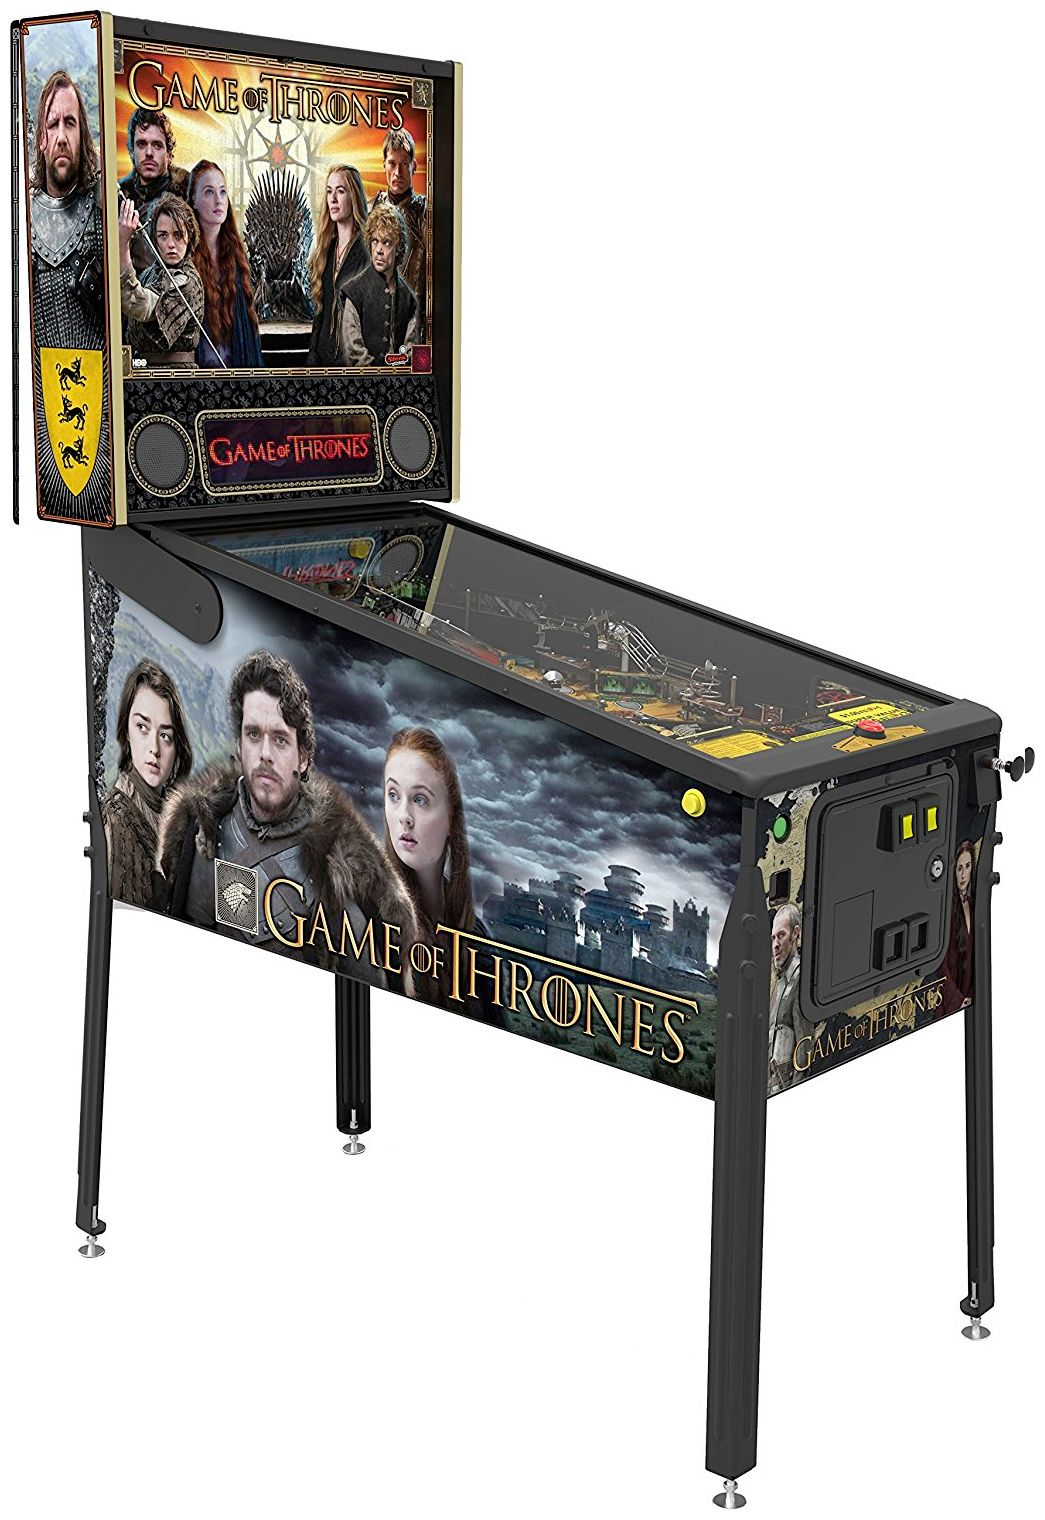 Game-of-Thrones-Pinball-Pro-Arcade-Pinball-Machine-06